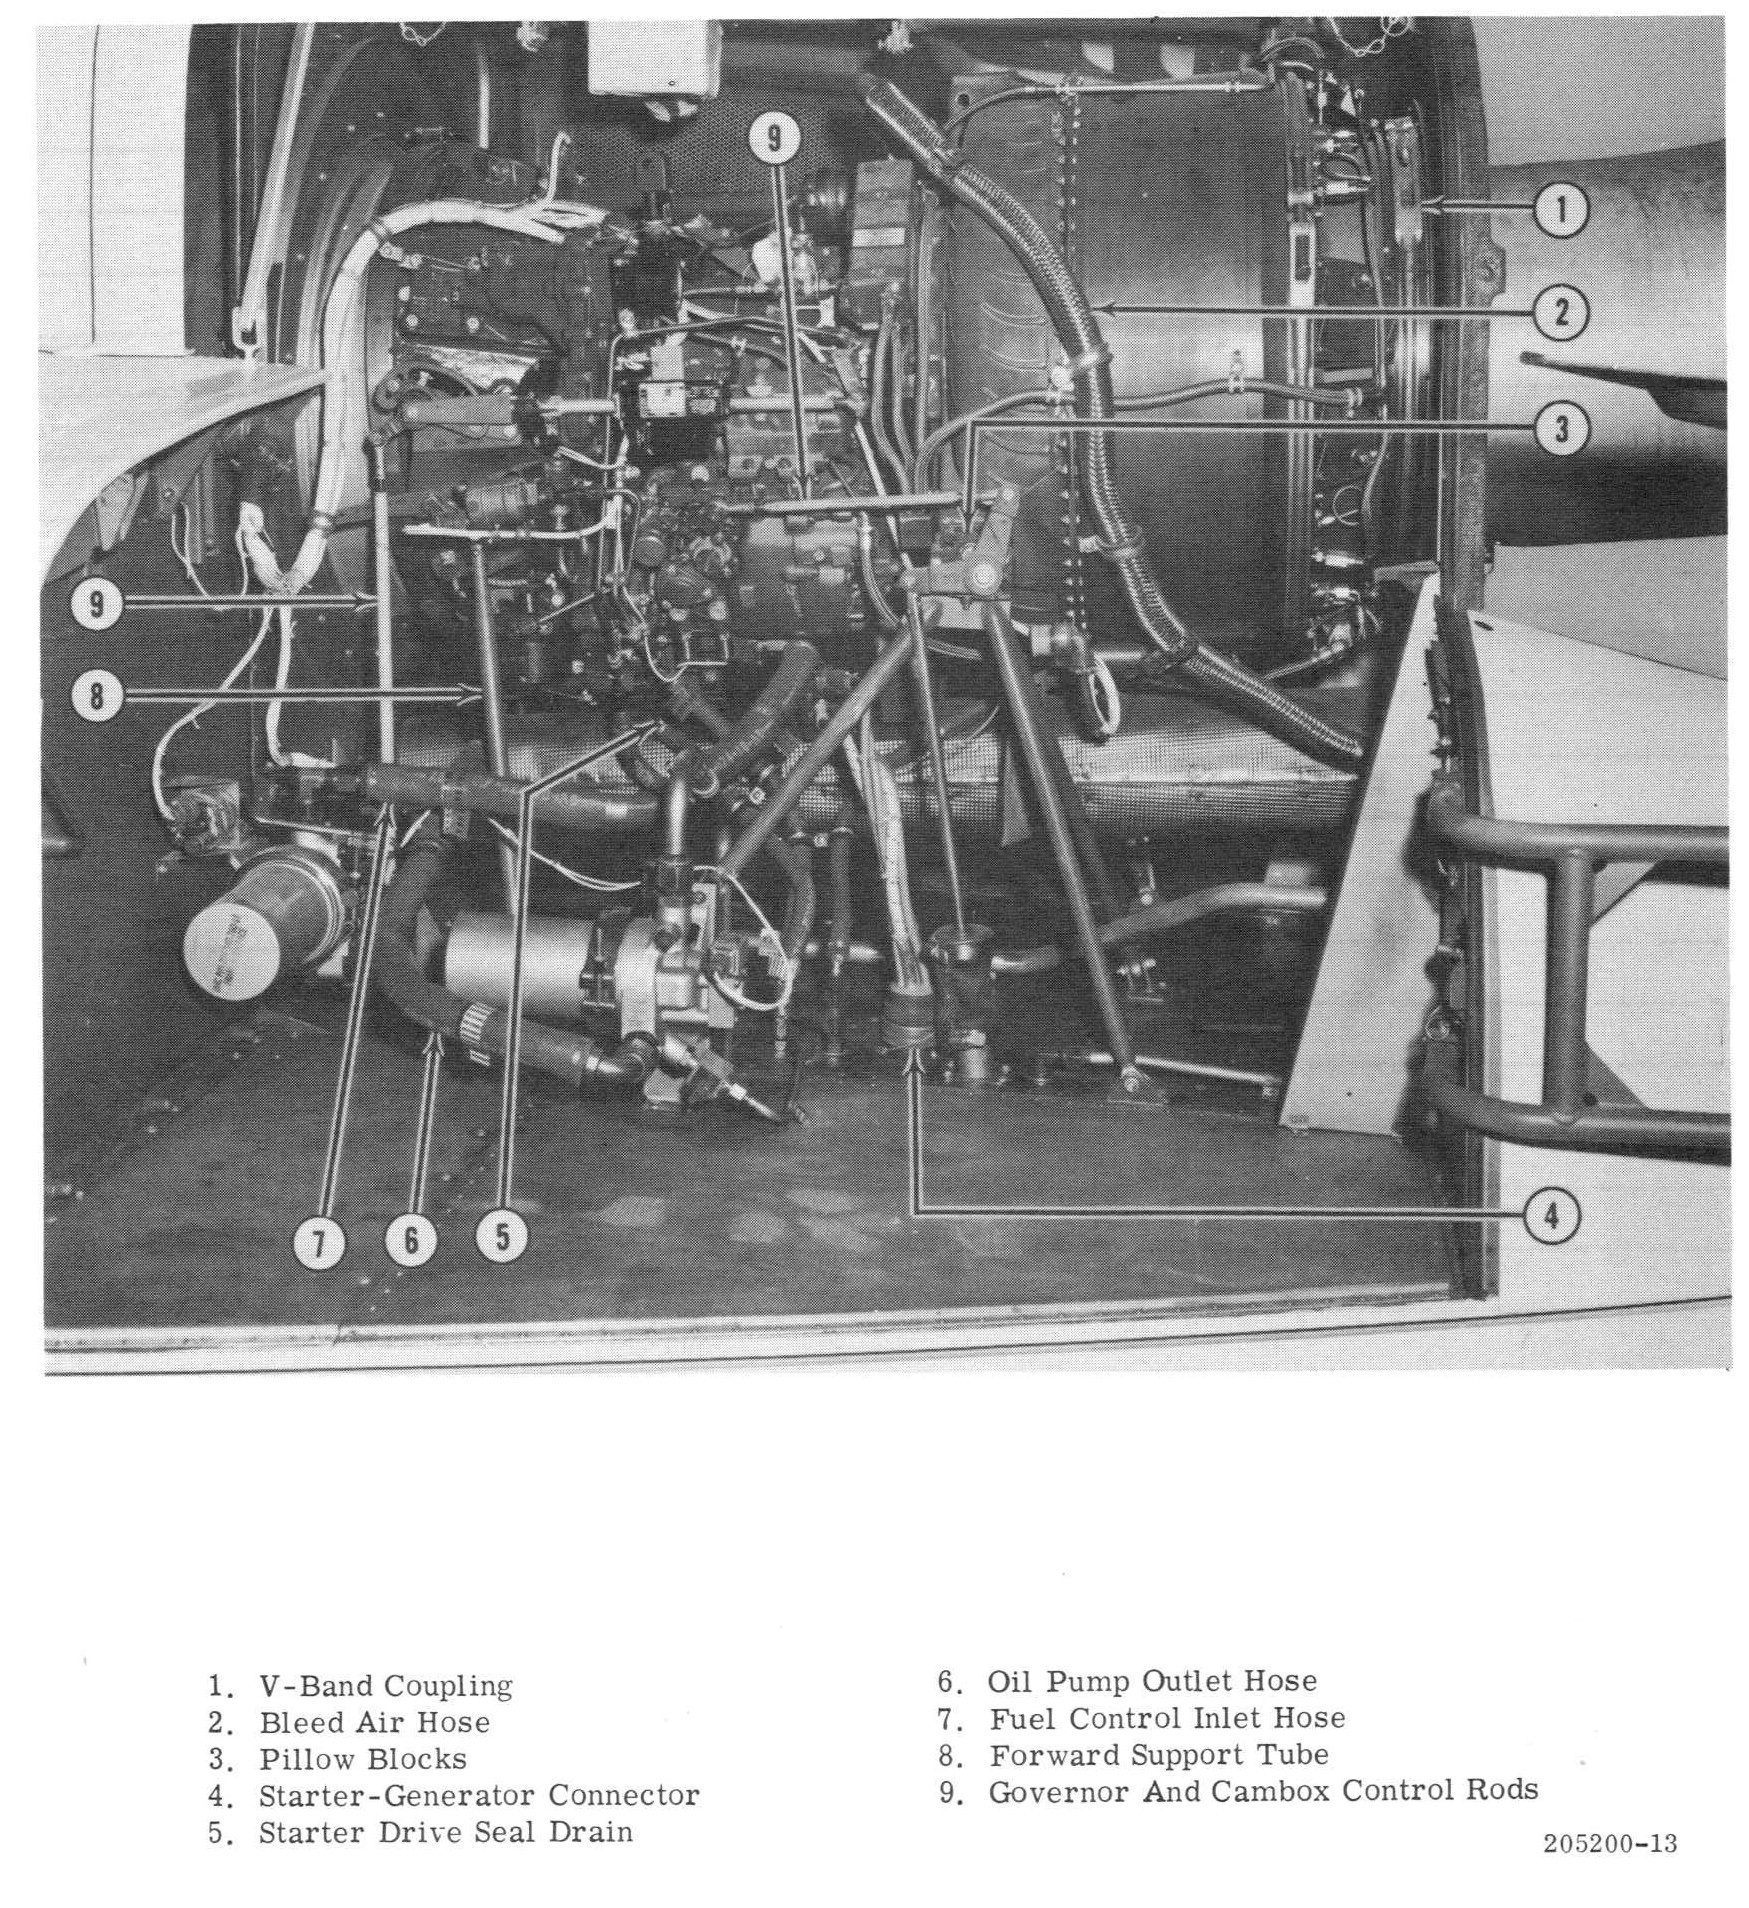 Bell Model 205a 1 Image Downloads Exploded Diagram Engine Related Keywords Suggestions Cowling